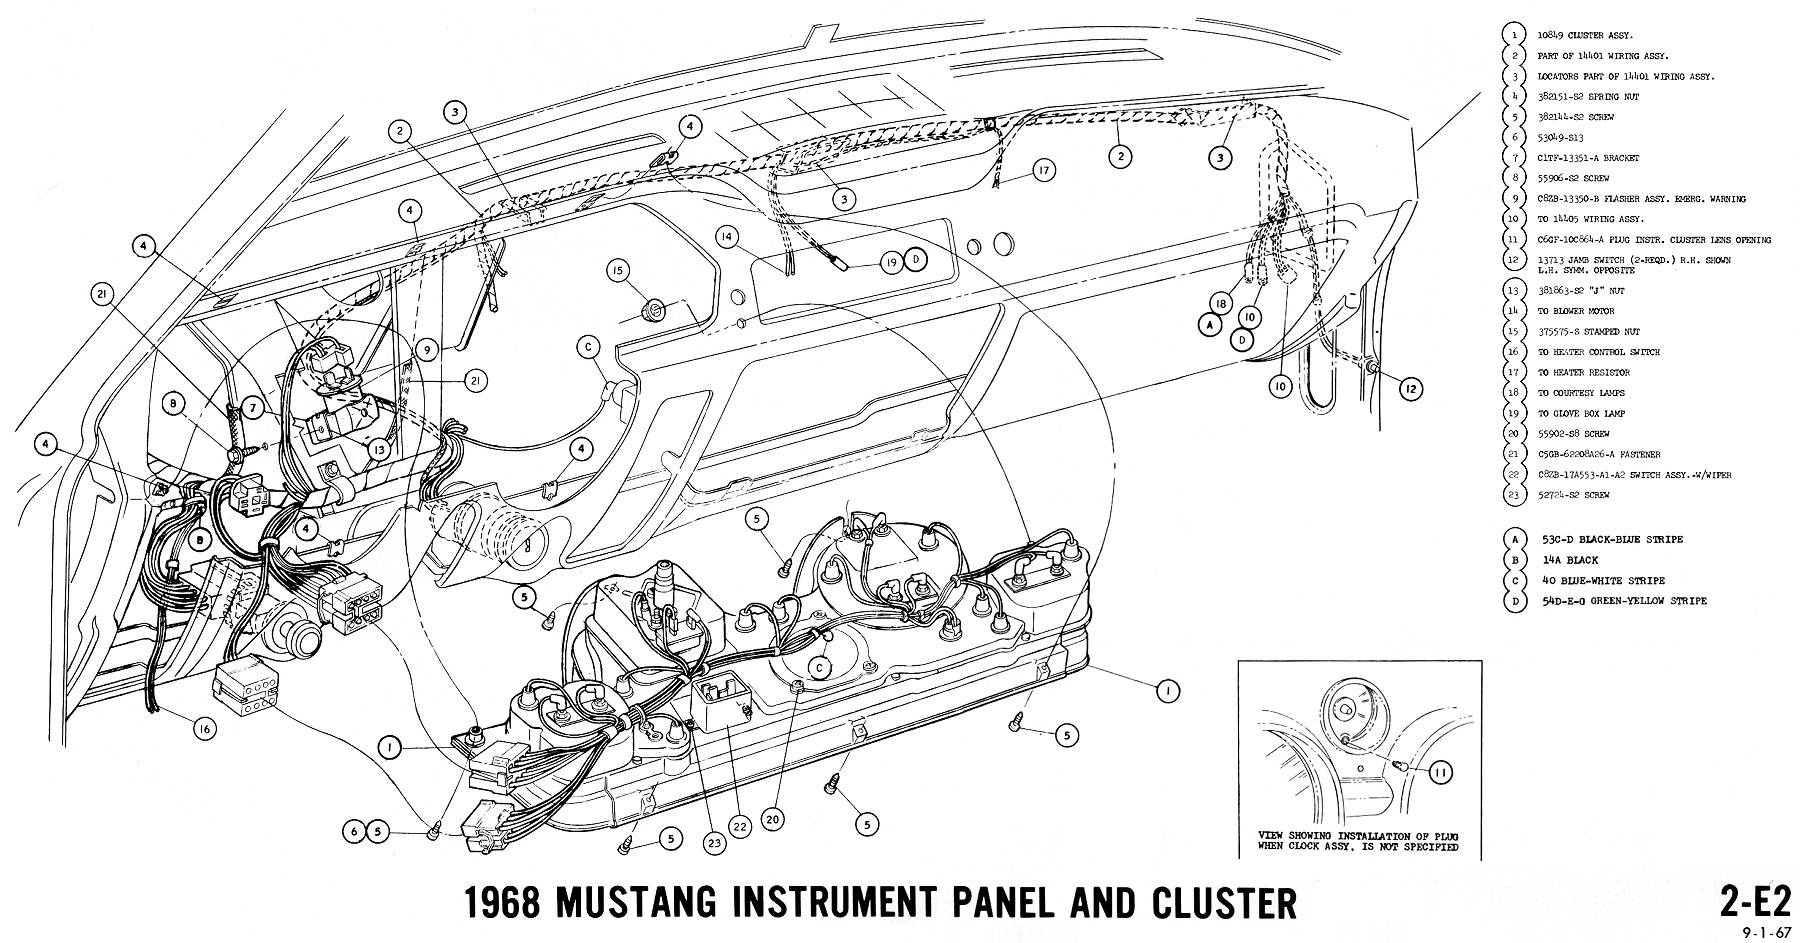 1968 Ford Convertible Wiring Diagram Circuit Schematic 861 Mustang Dash Cluster Electrical Diagrams Ez